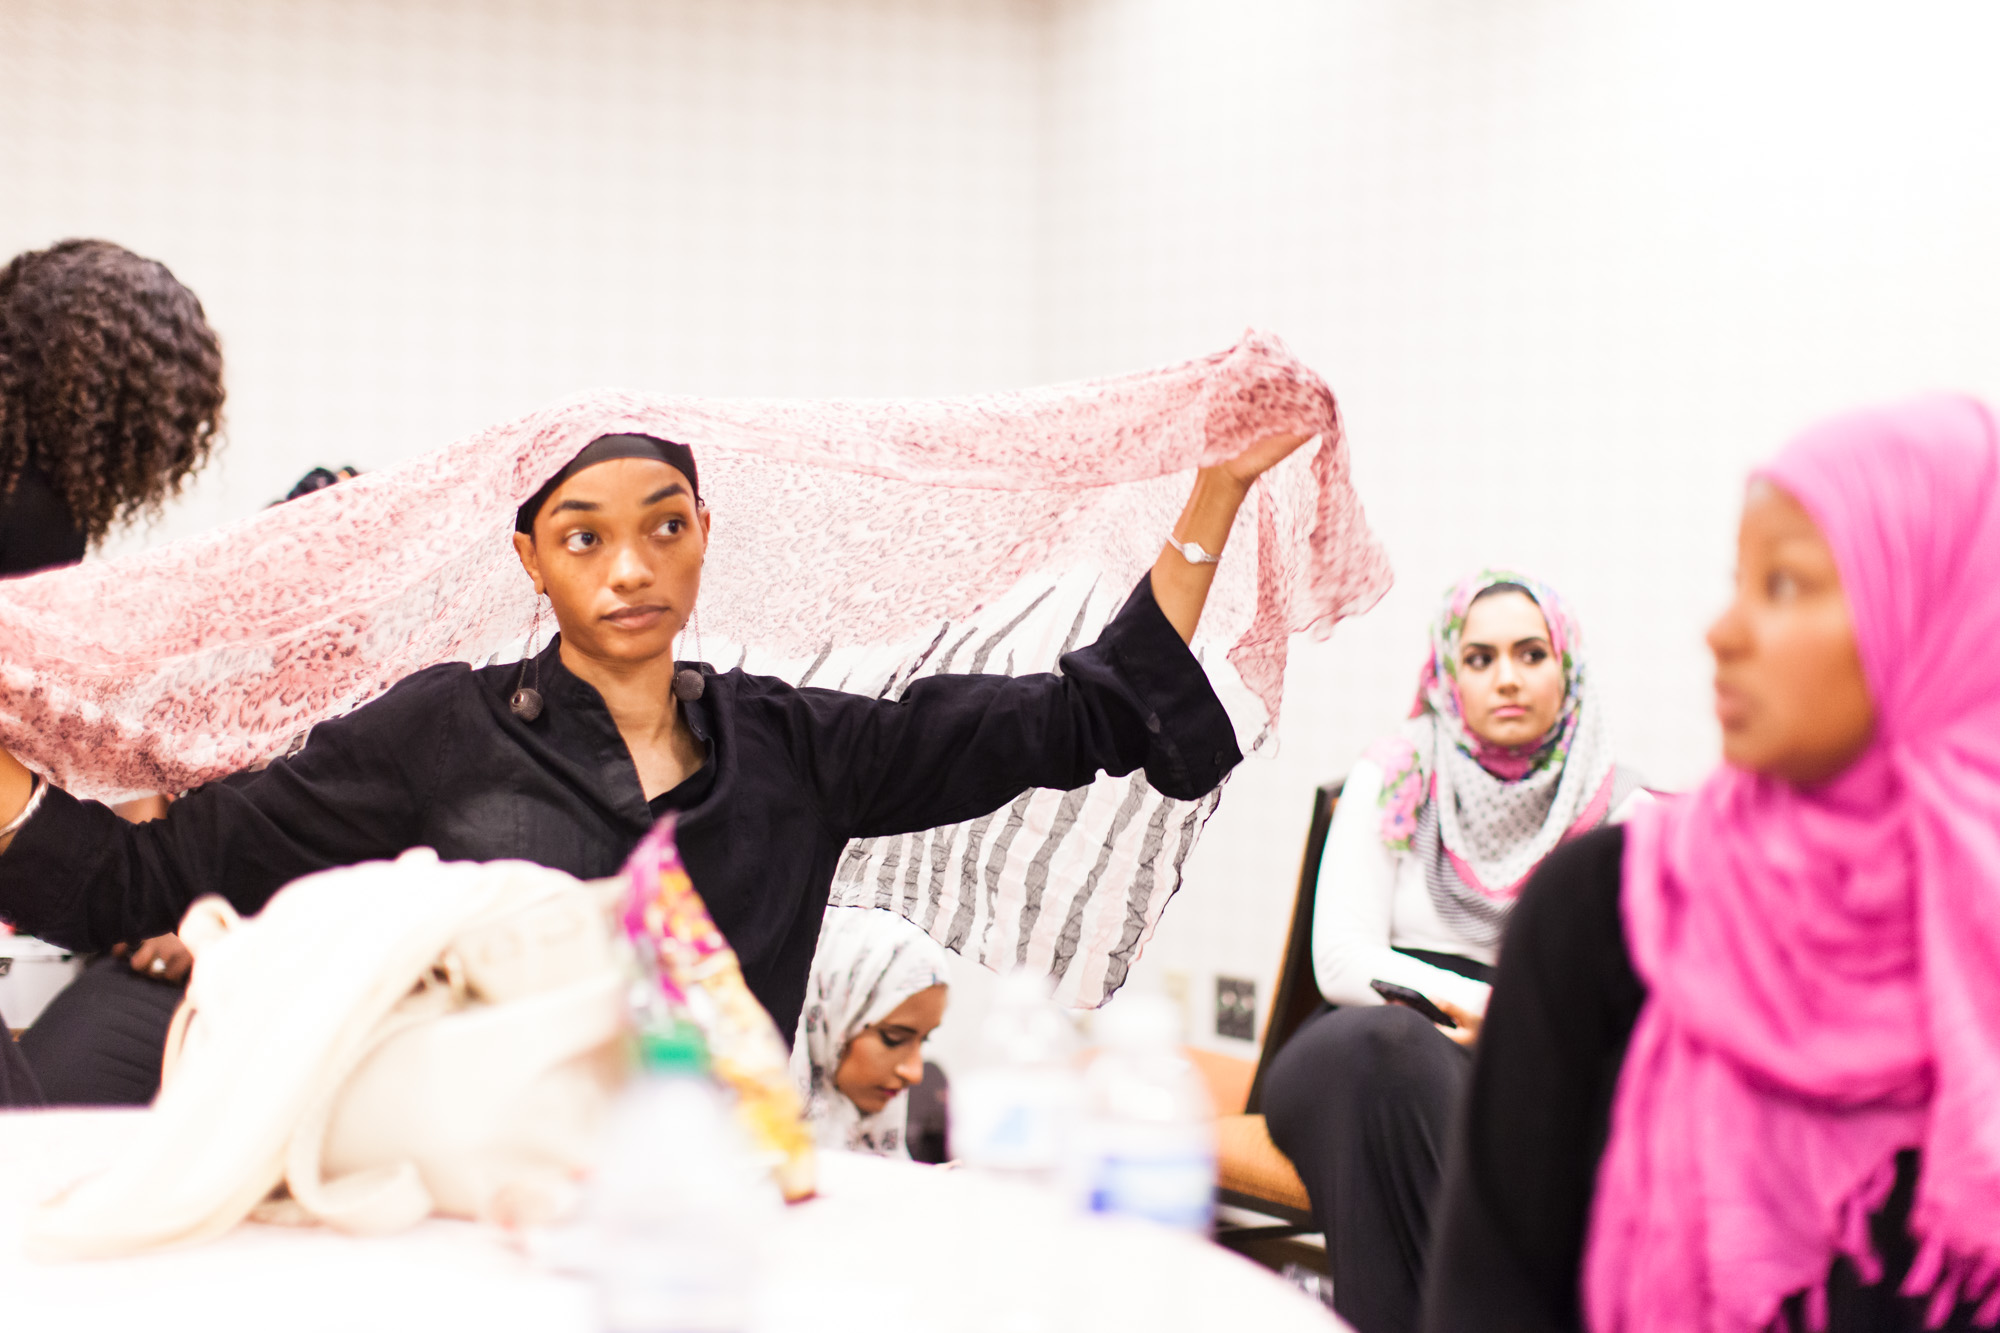 Reaching All HIV+ Muslims in America (RAHMA) hosted a fashion show in Washington, DC on Aug. 16, 2014. The clothing and accessories are all made by Muslim women designers from around the US. They specialize in creating modest fashion that complies with Islamic tradition.